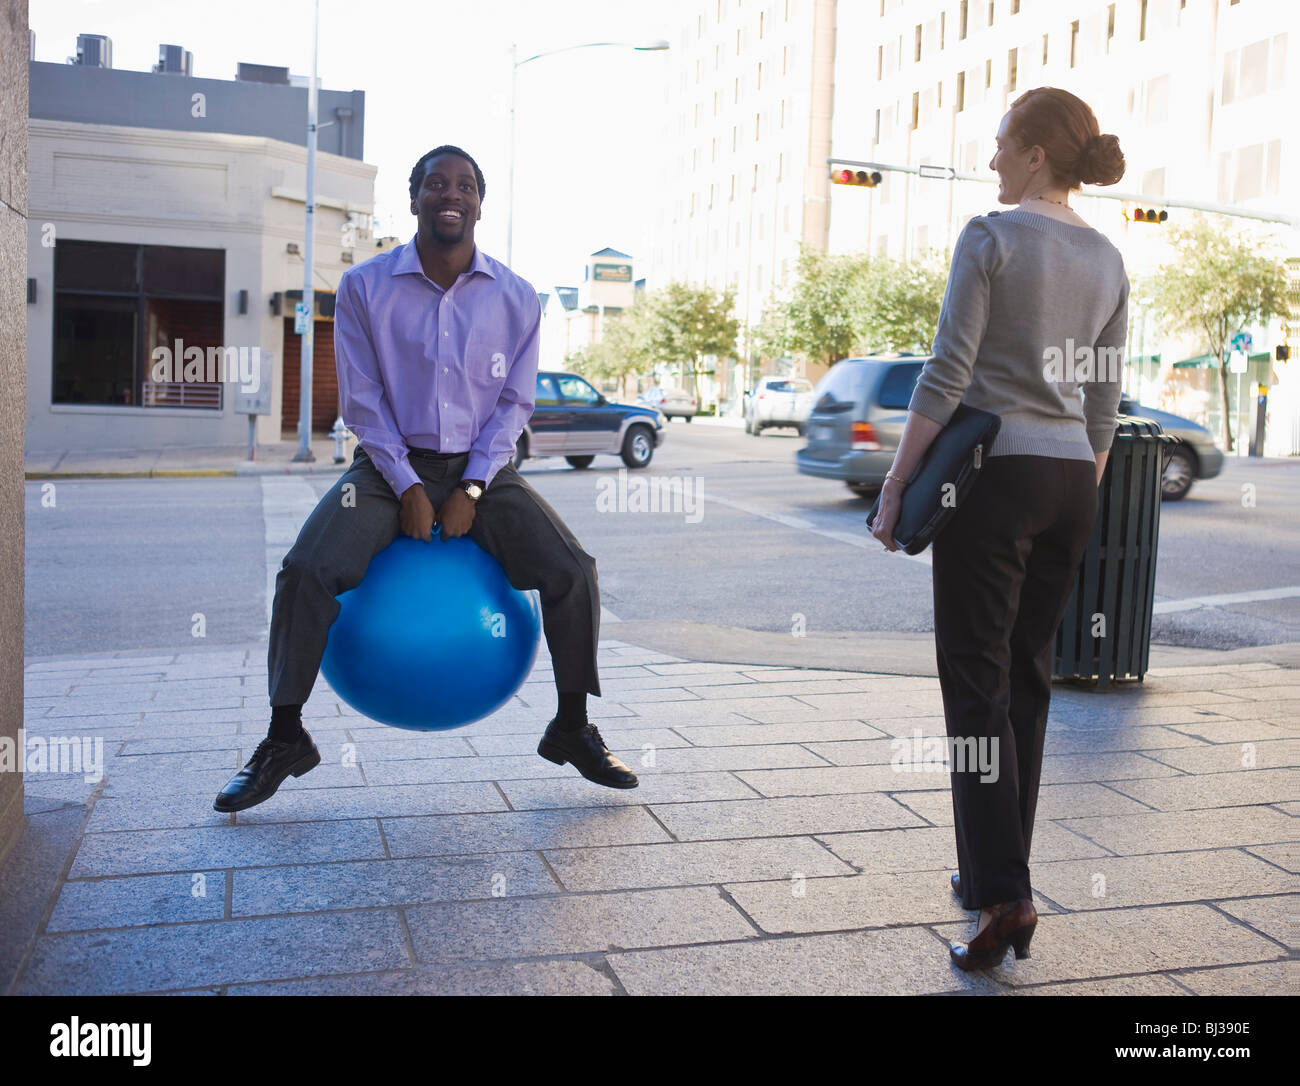 businessman on blue ball in street - Stock Image